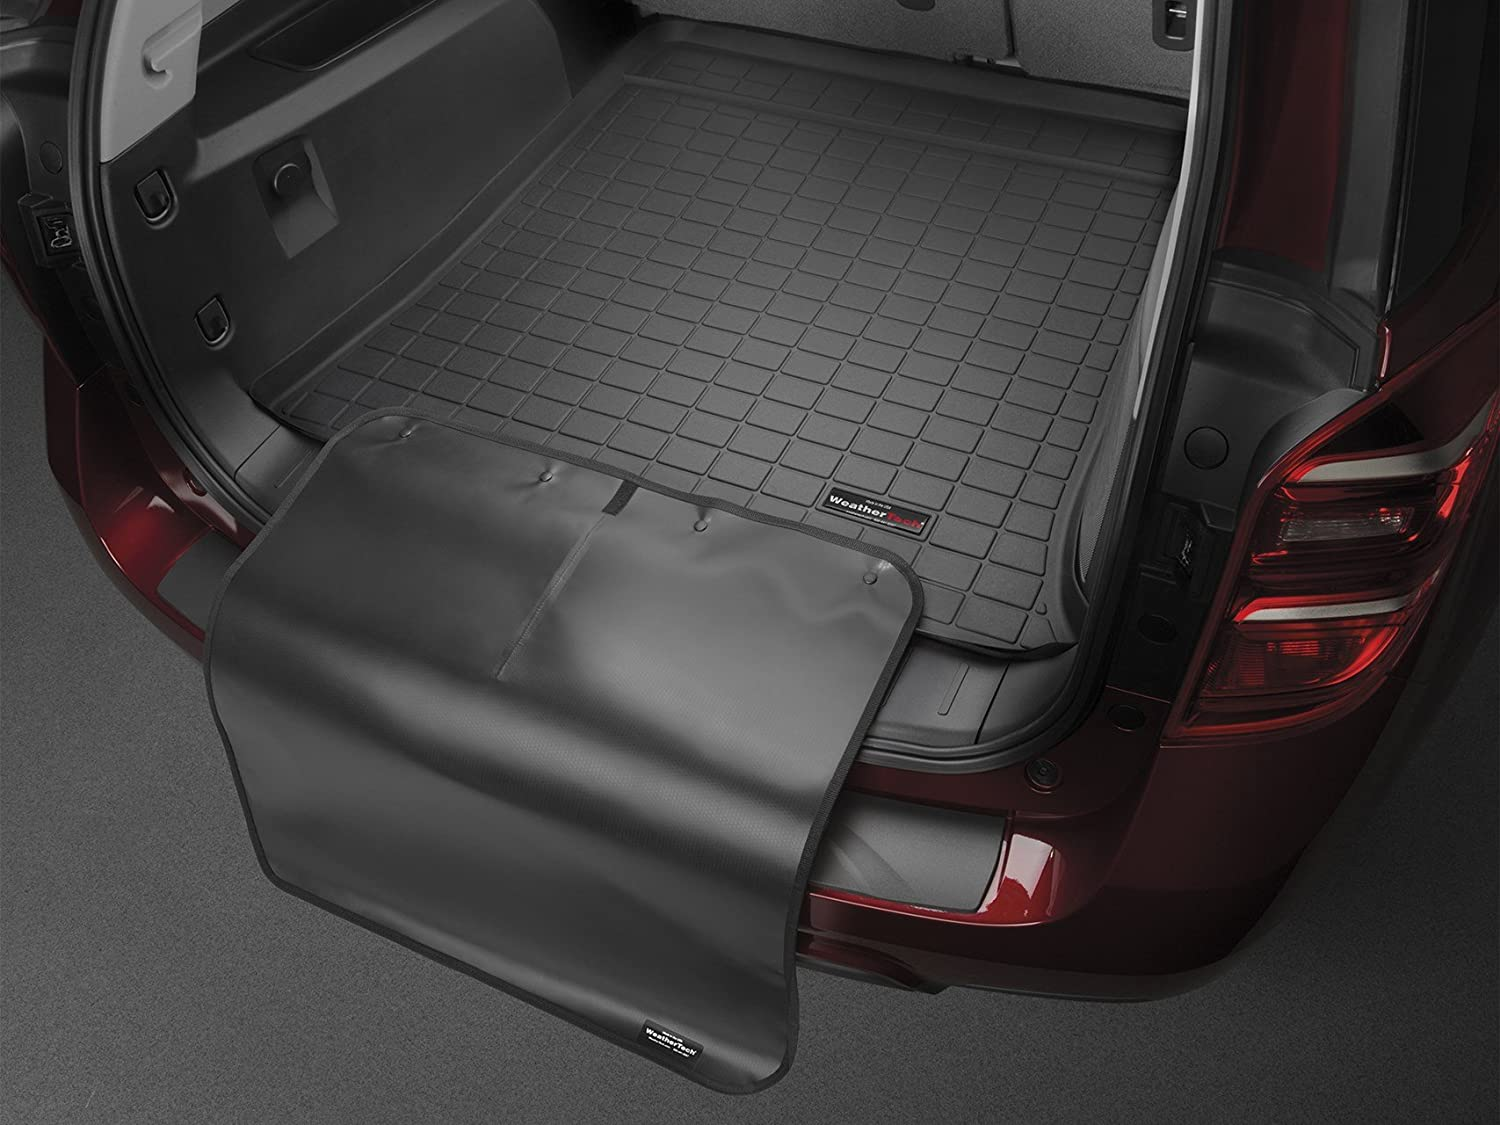 WeatherTech Cargo Trunk Liner with for Protector Max 68% OFF gift Bumper Volkswag